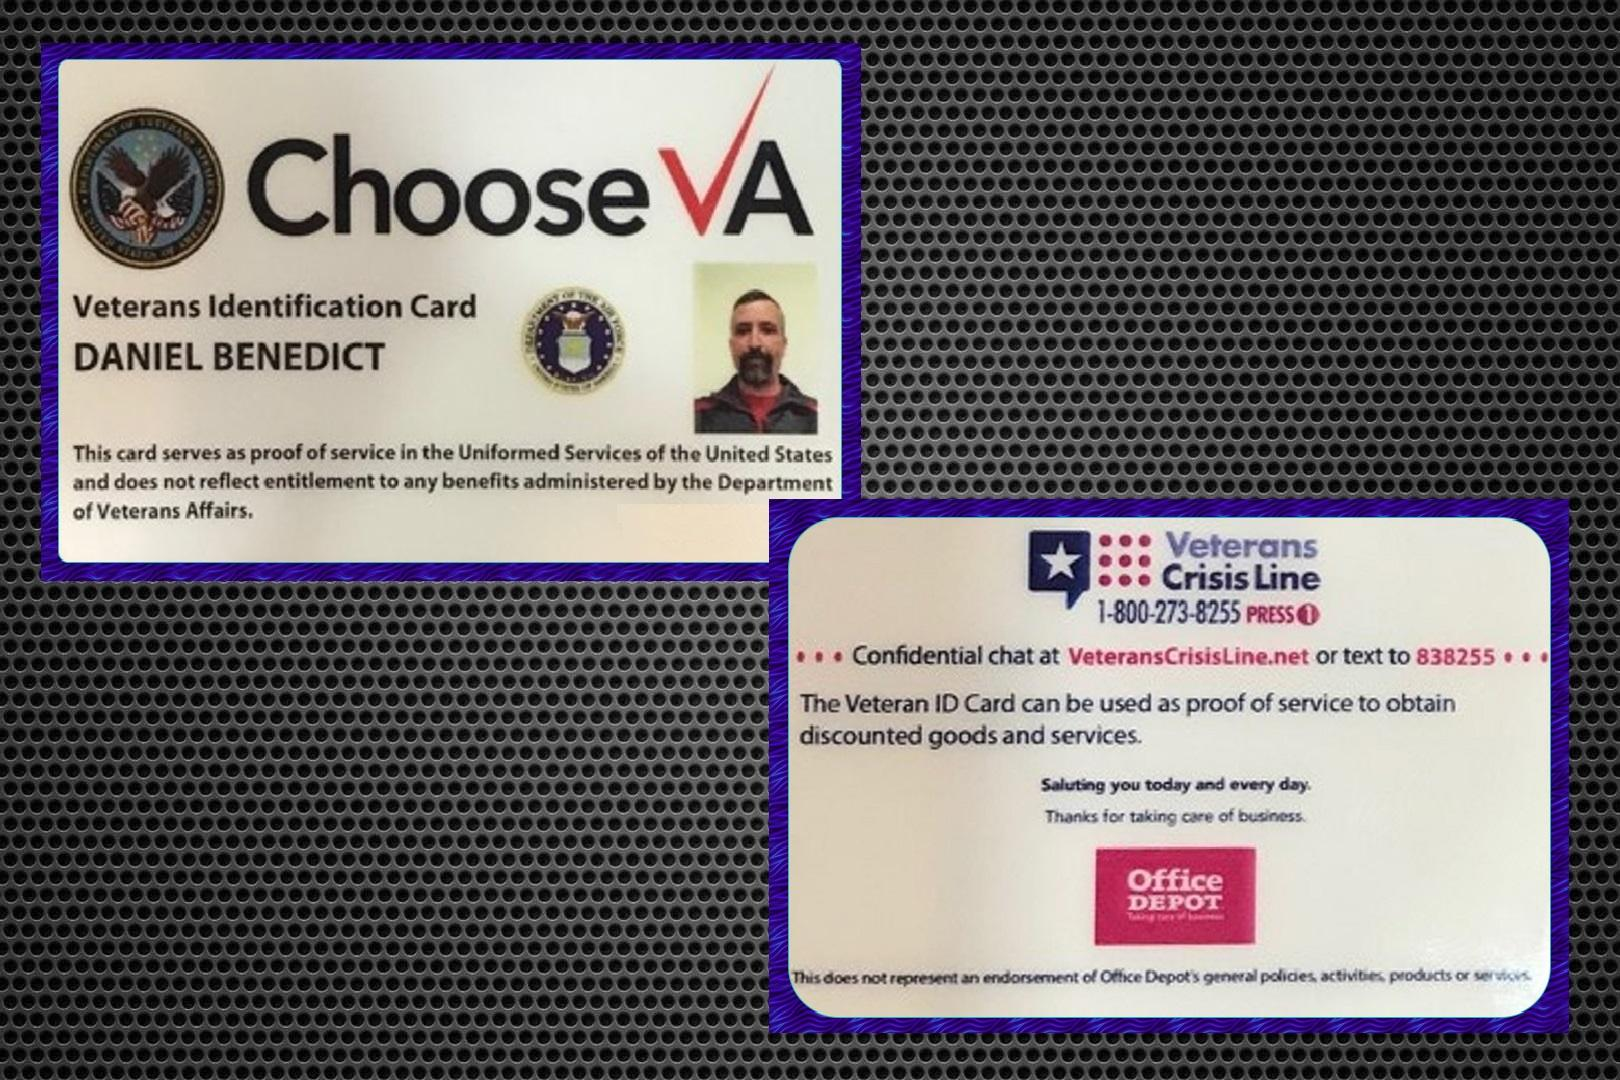 VA Issues Long Awaited Veteran ID Card, But It Comes With